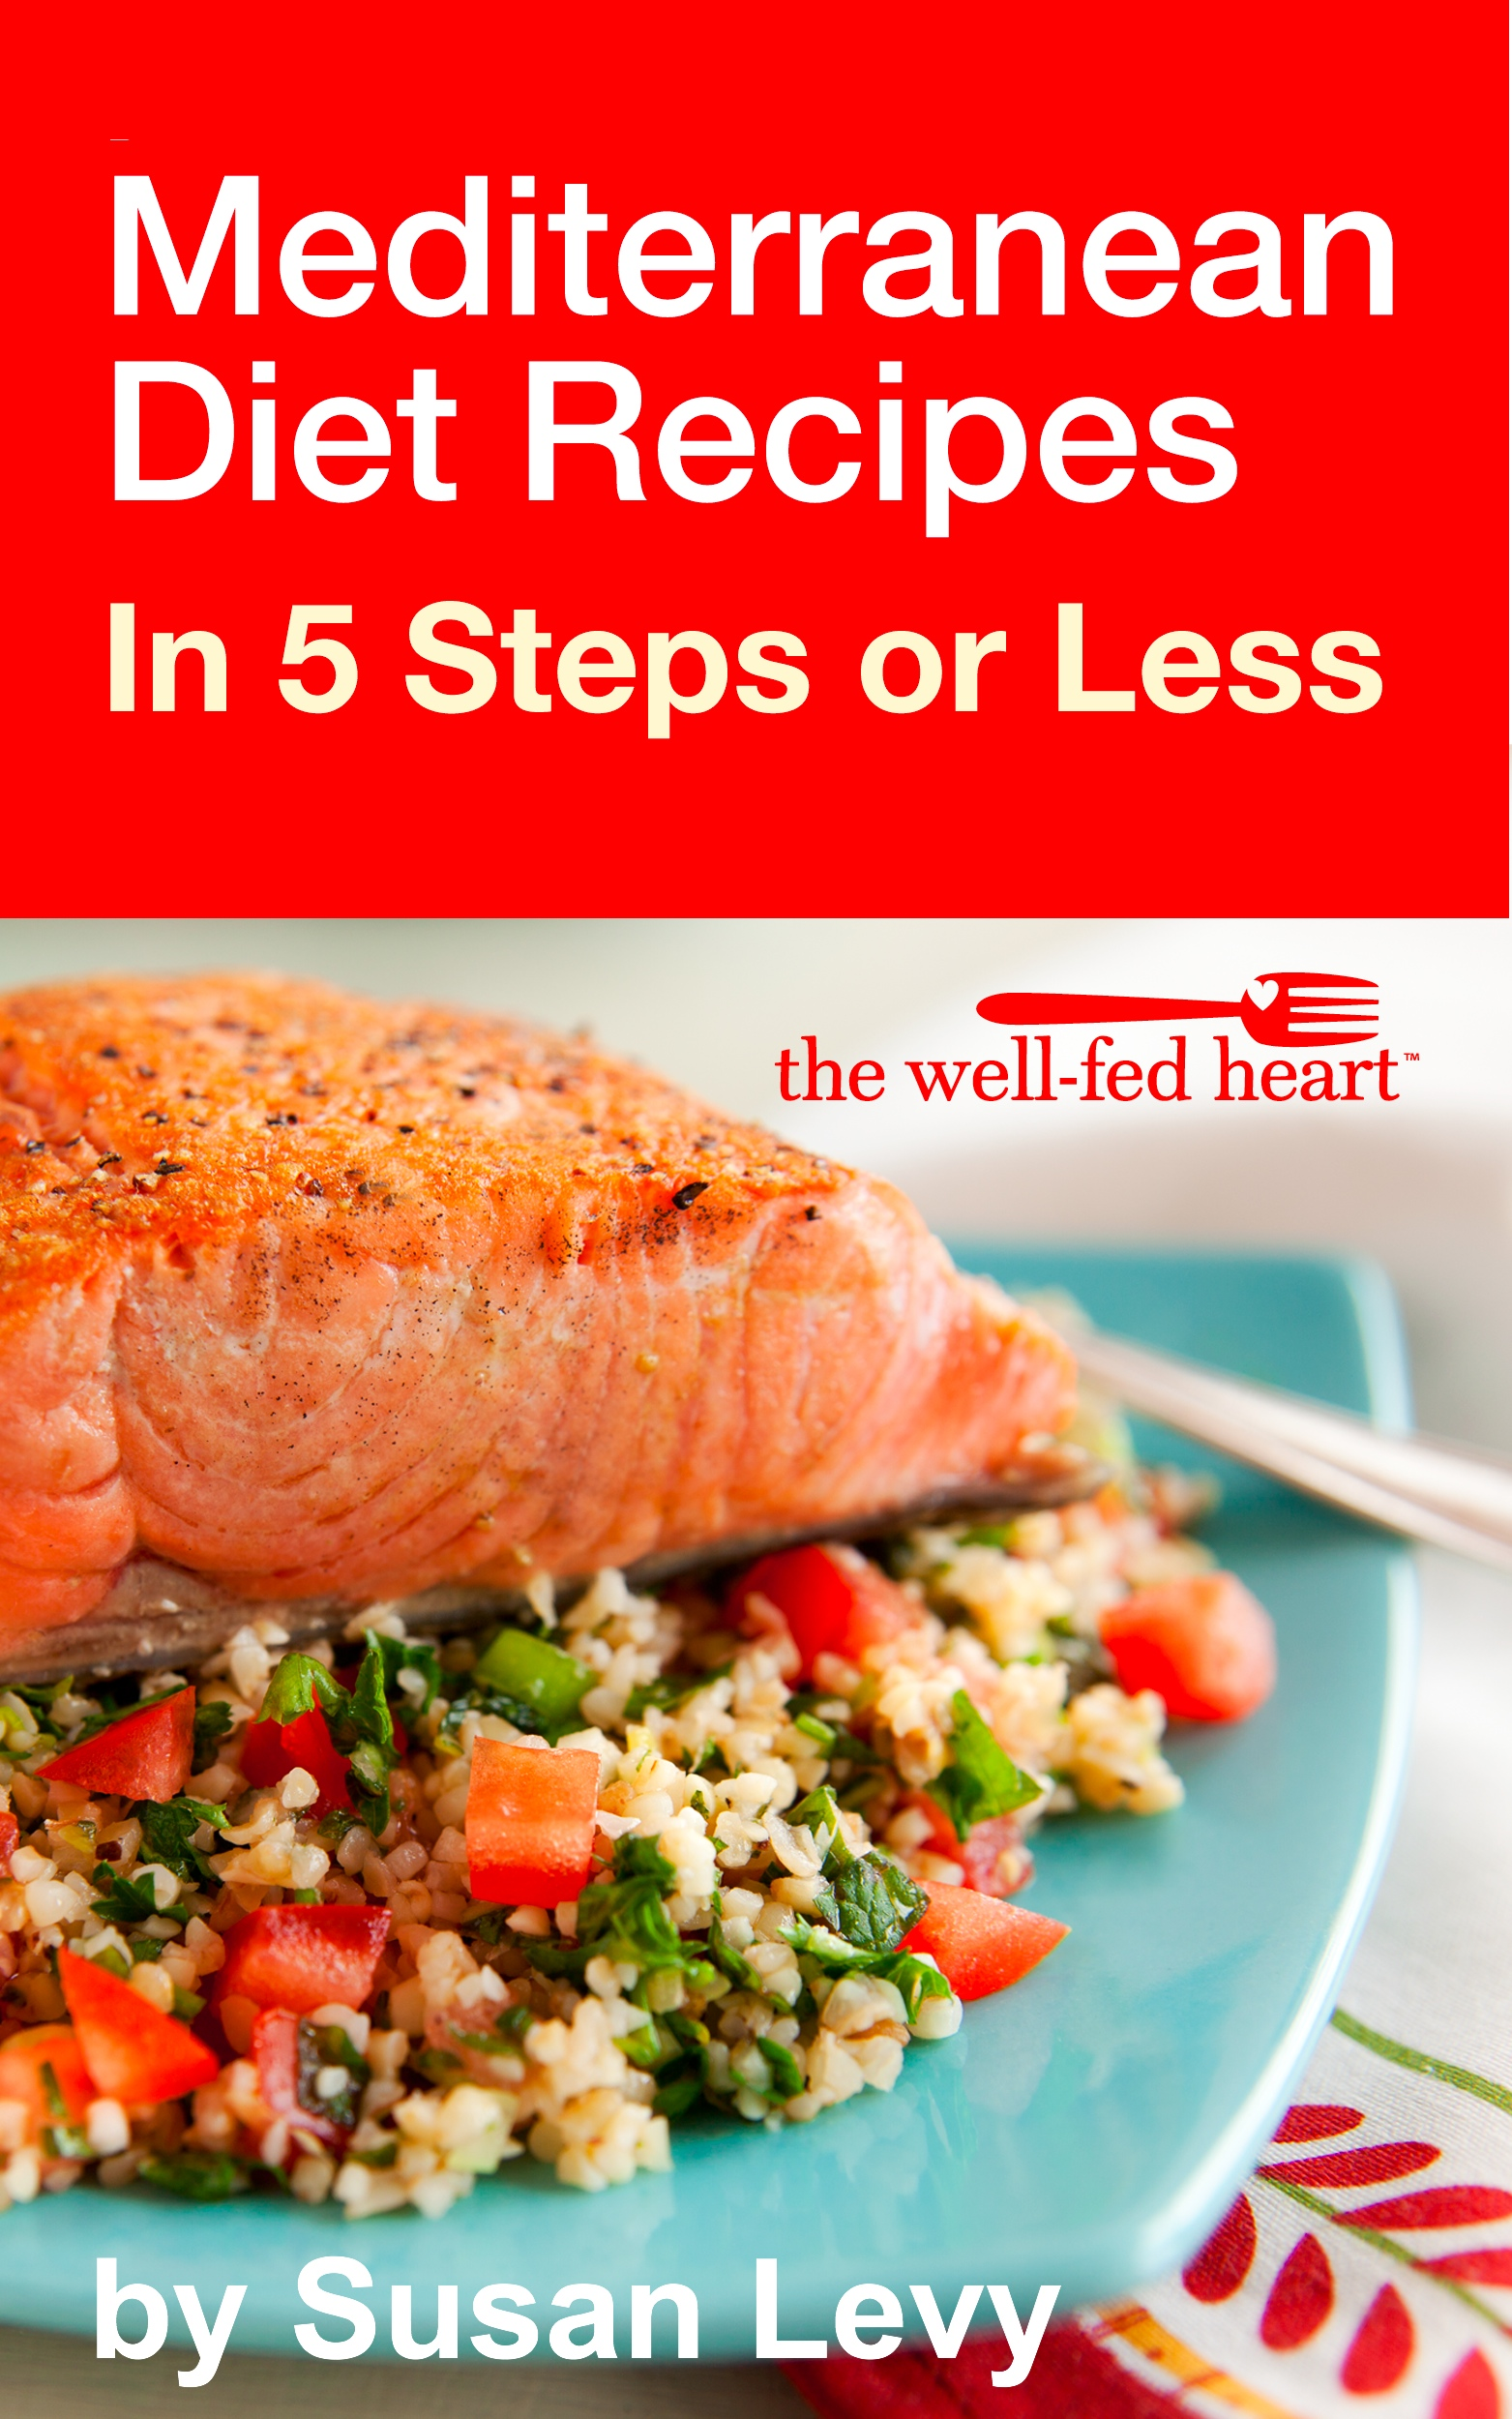 MEDITERRANEAN DIET RECIPES IN 5 STEPS OR LESS